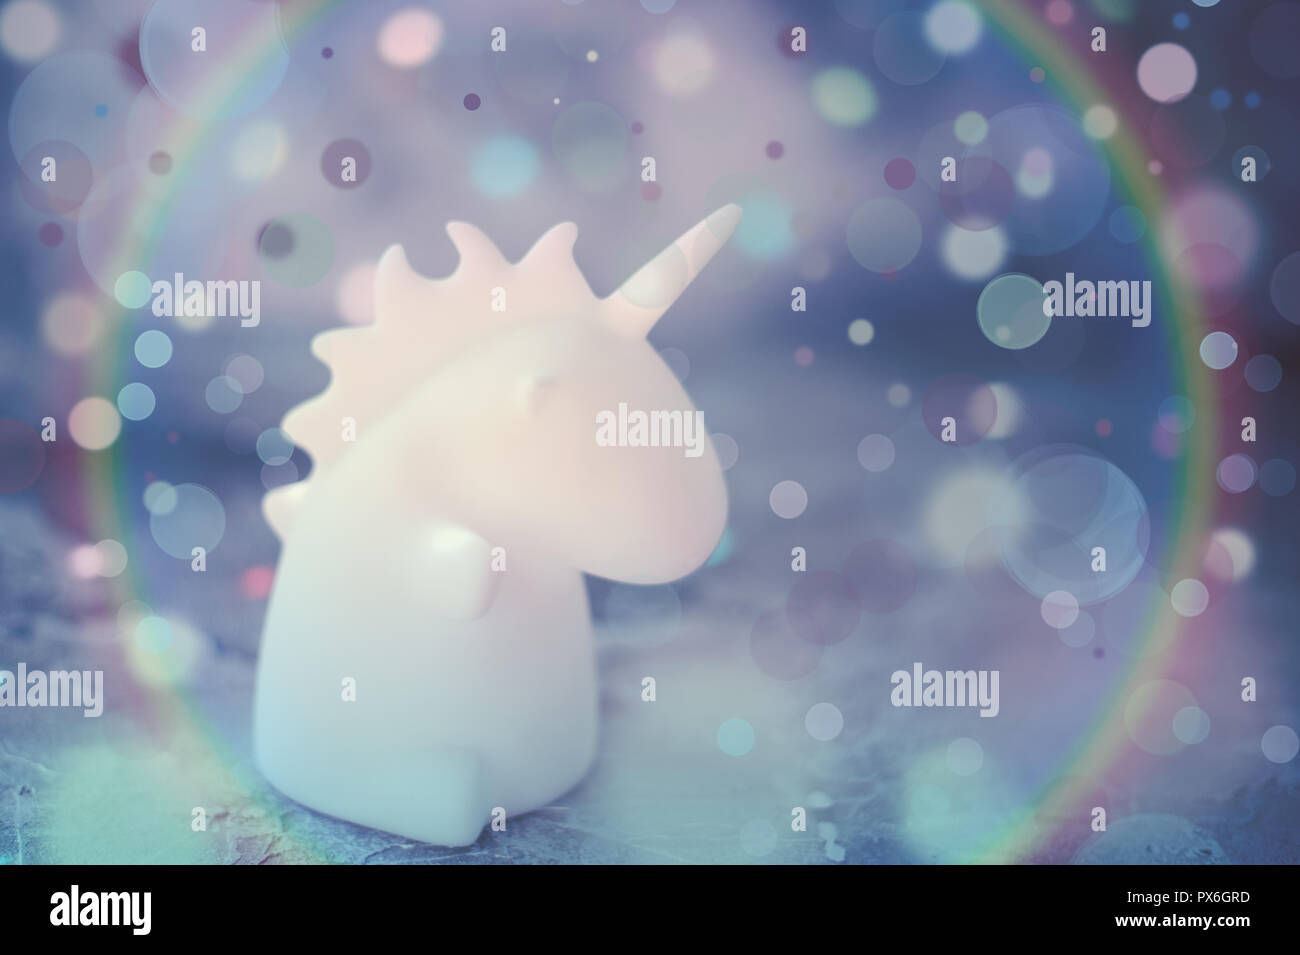 Unicorn shape table lamp illuminated - Stock Image